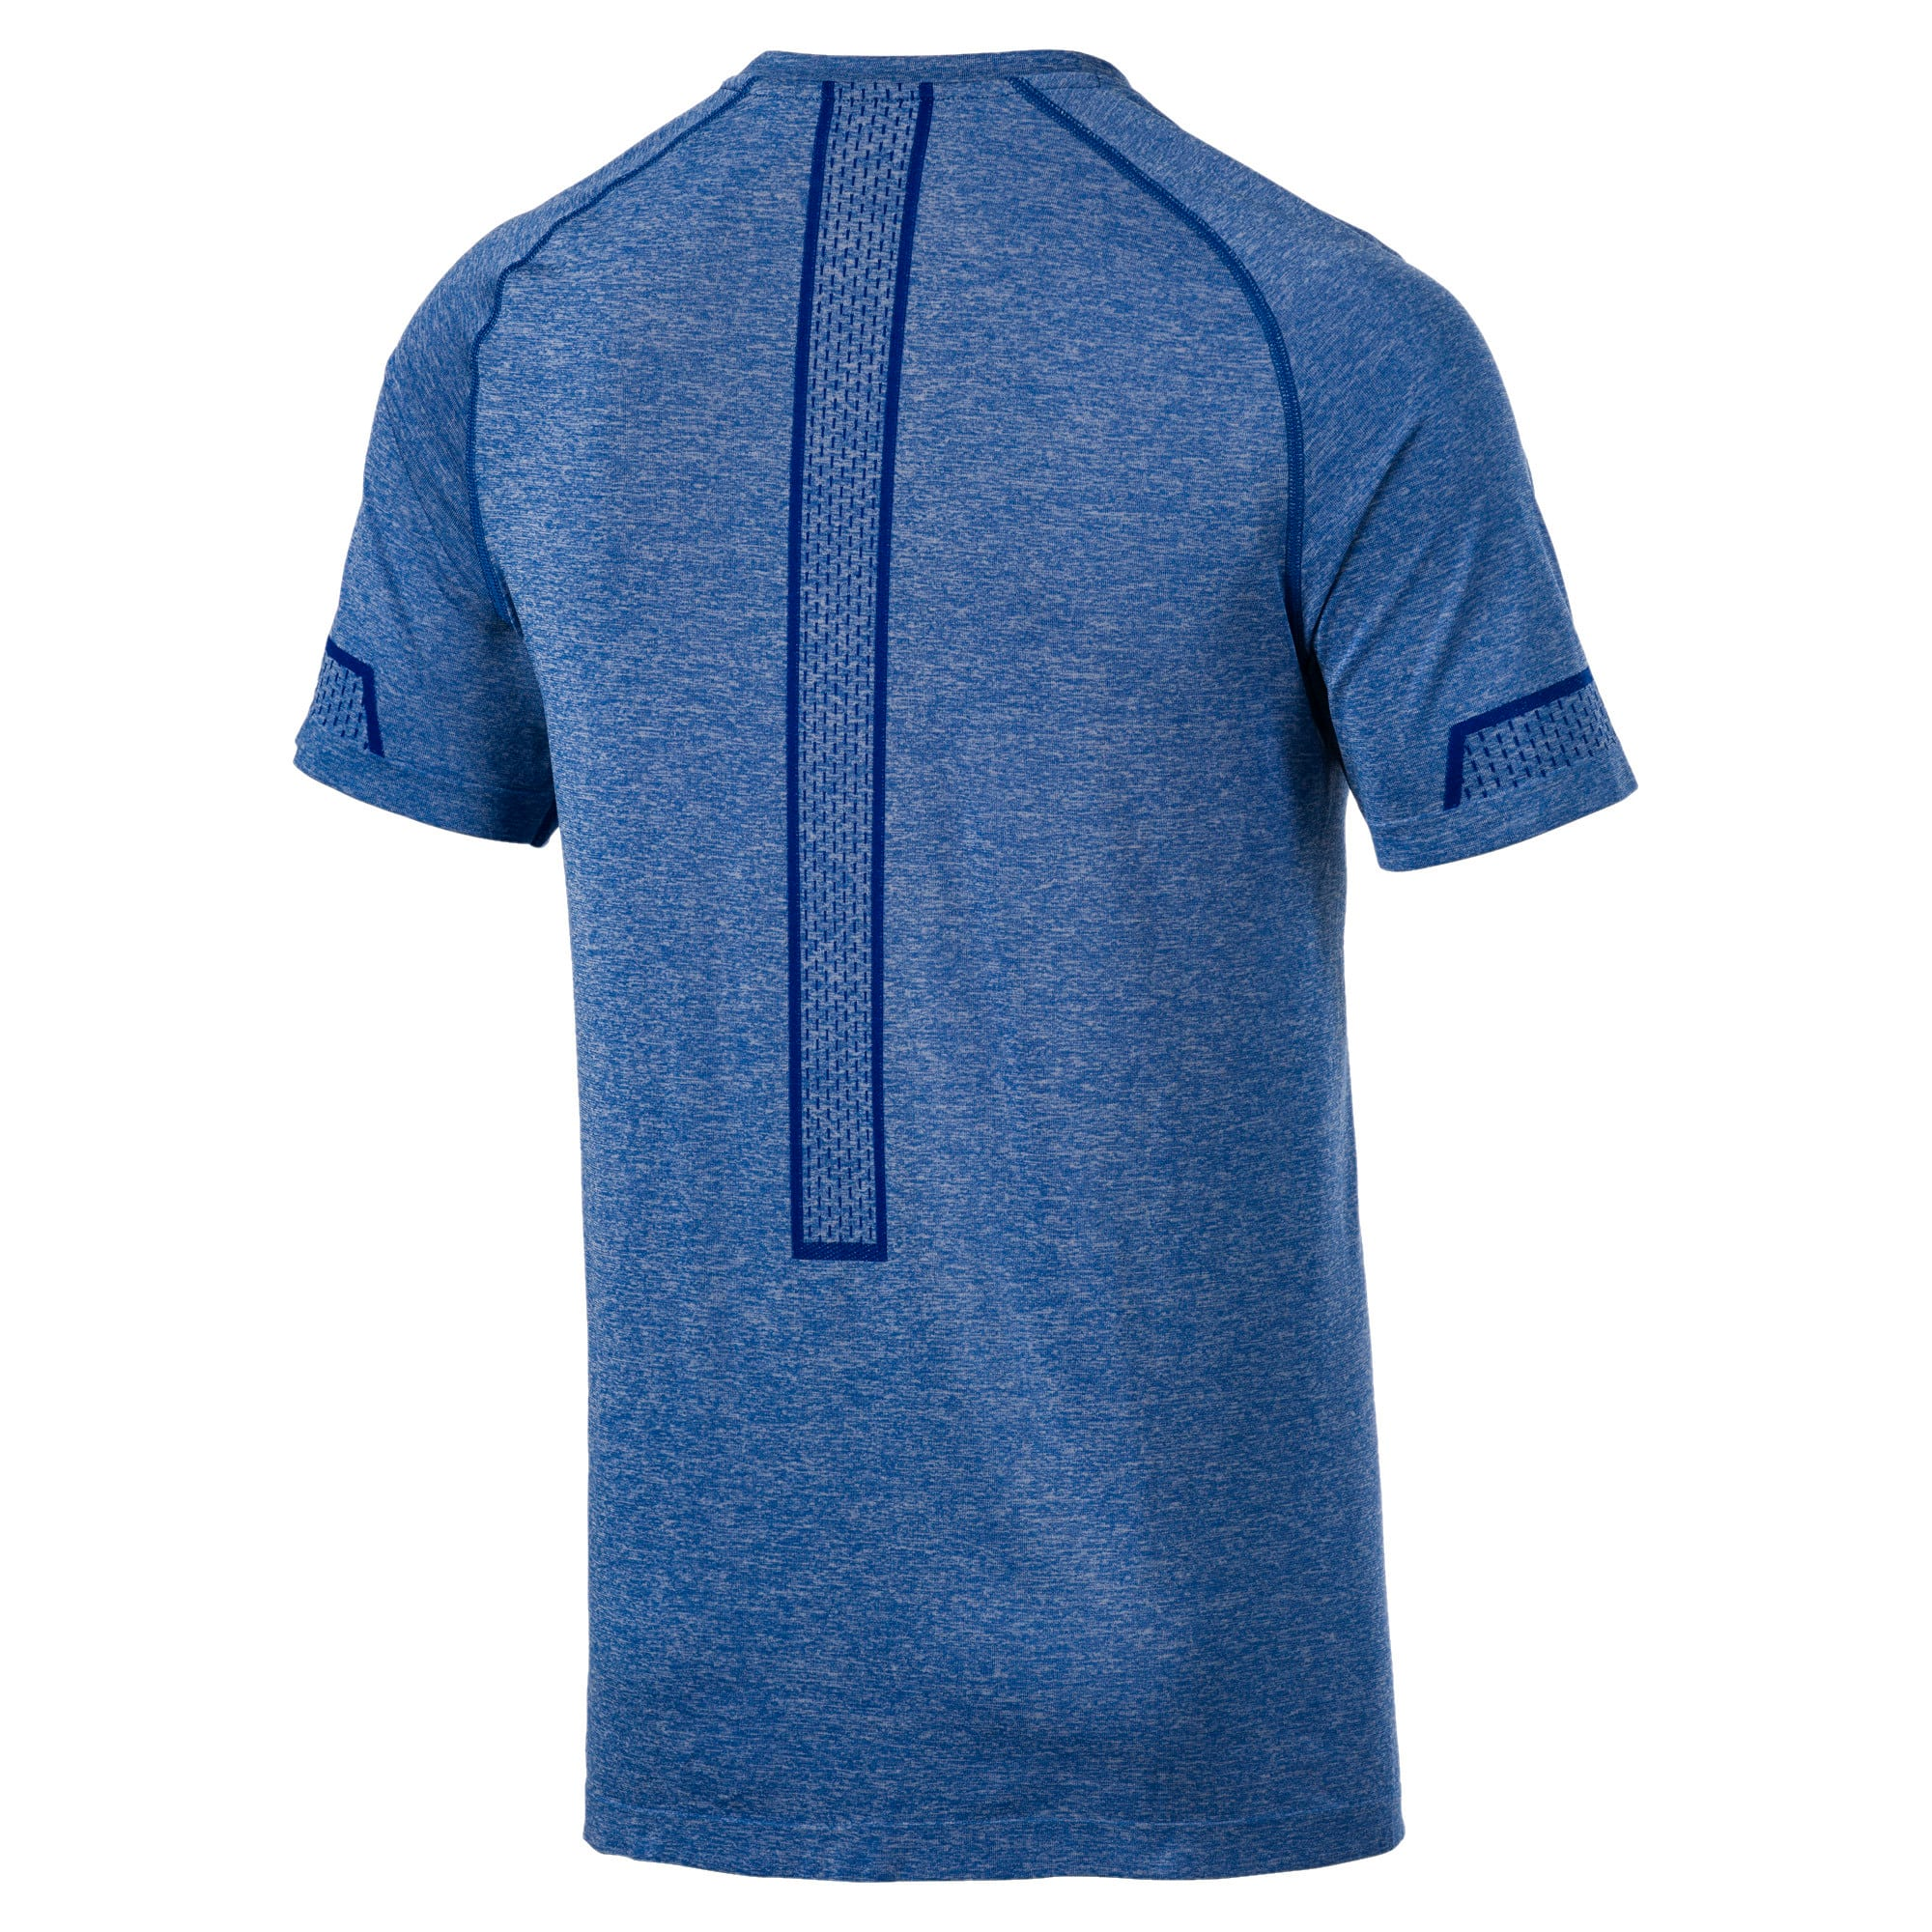 Naadloos Energy trainingsshirt voor heren, Galaxy Blue Heather, large